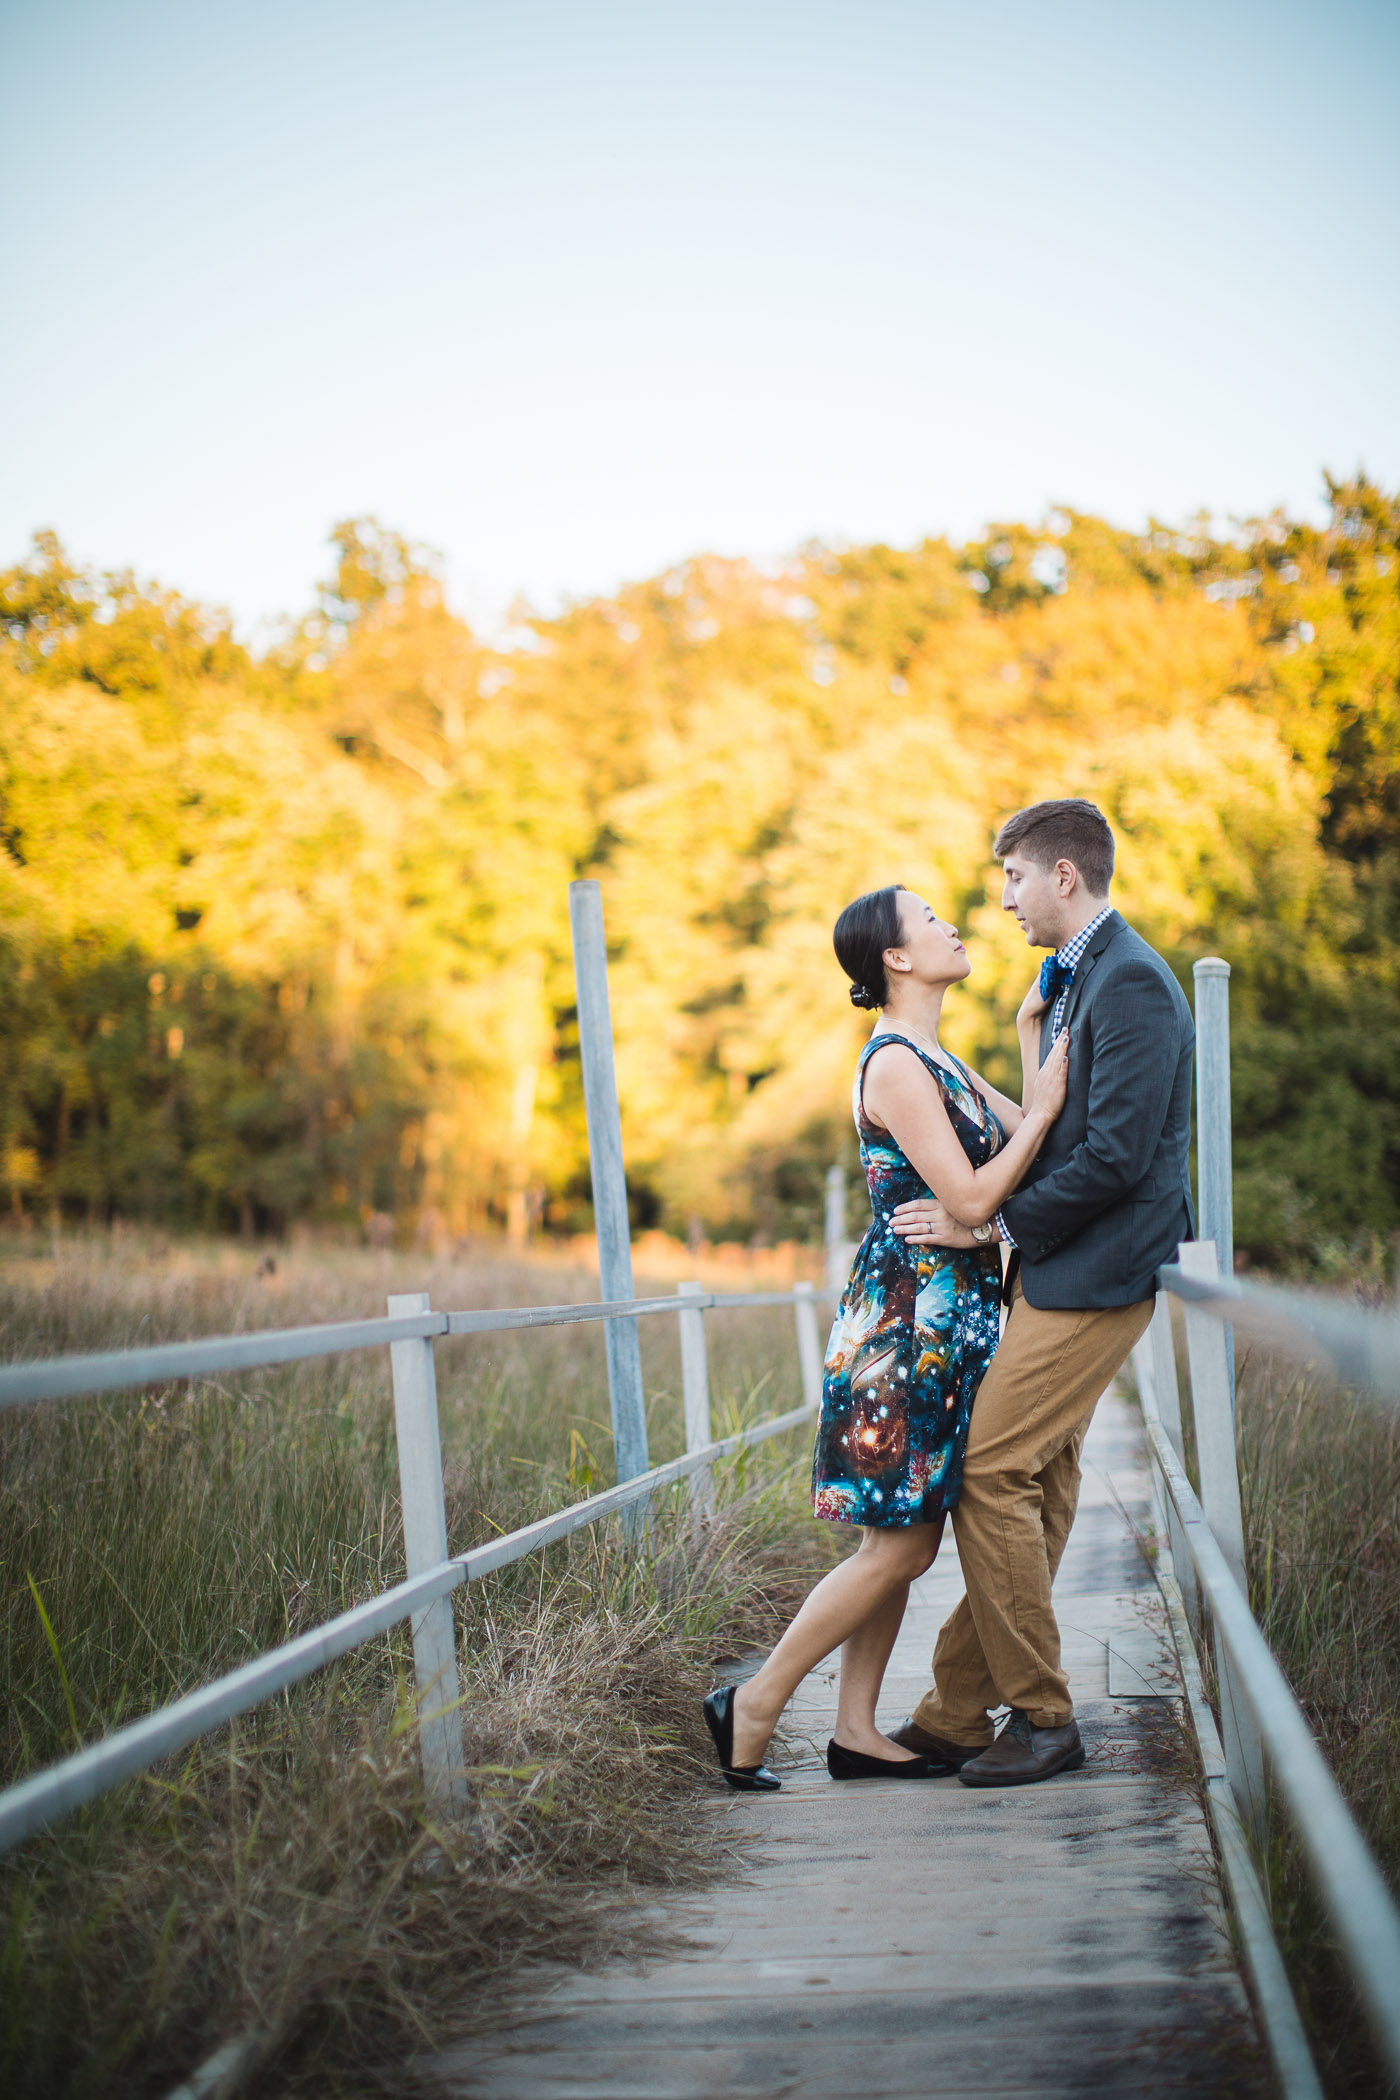 This Couple Had Their Engagement Session on Earth 22